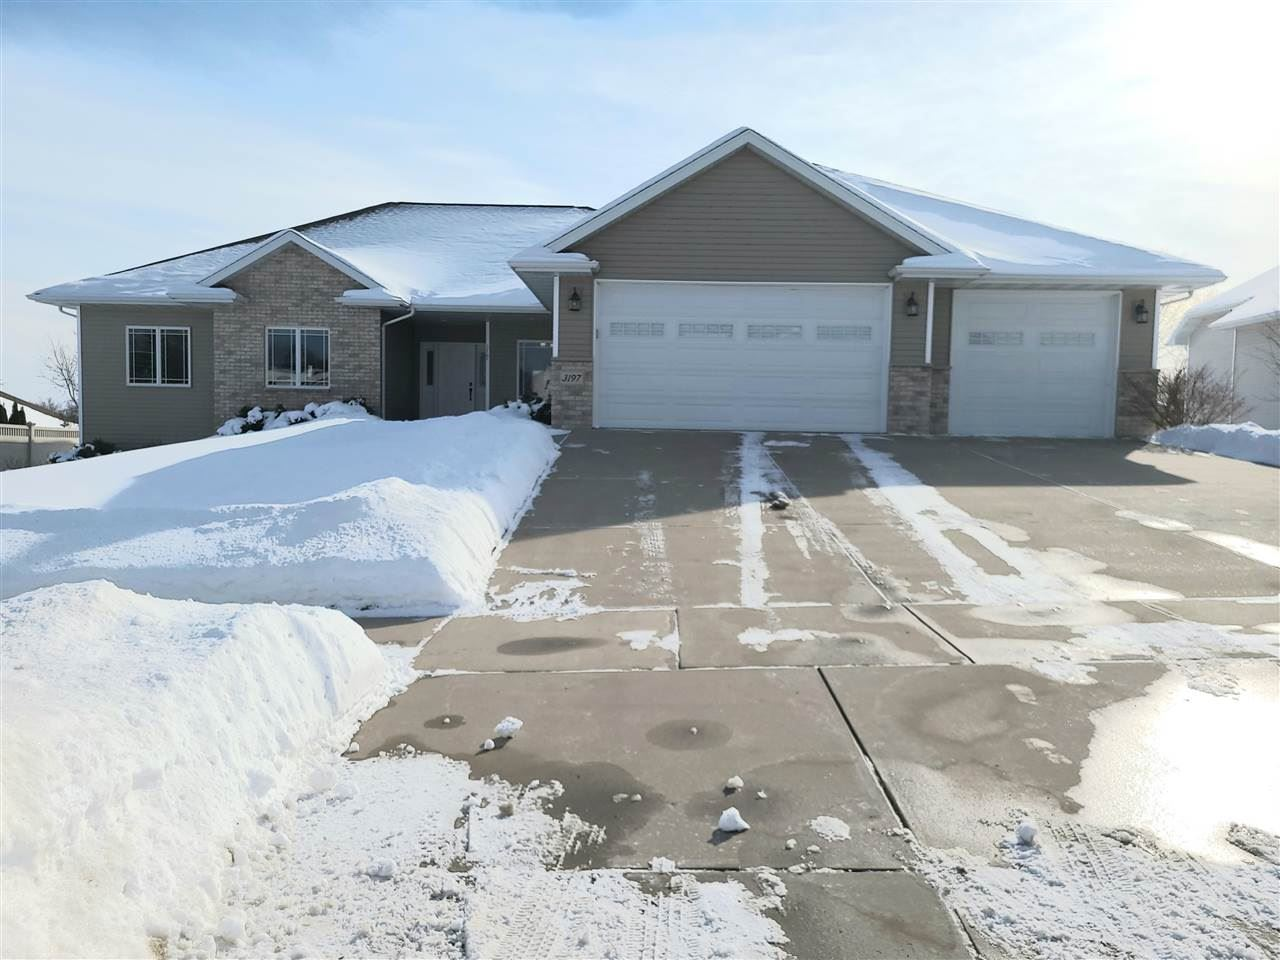 3197 DEVROY Lane, Green Bay, WI 54313 - MLS#: 50235723